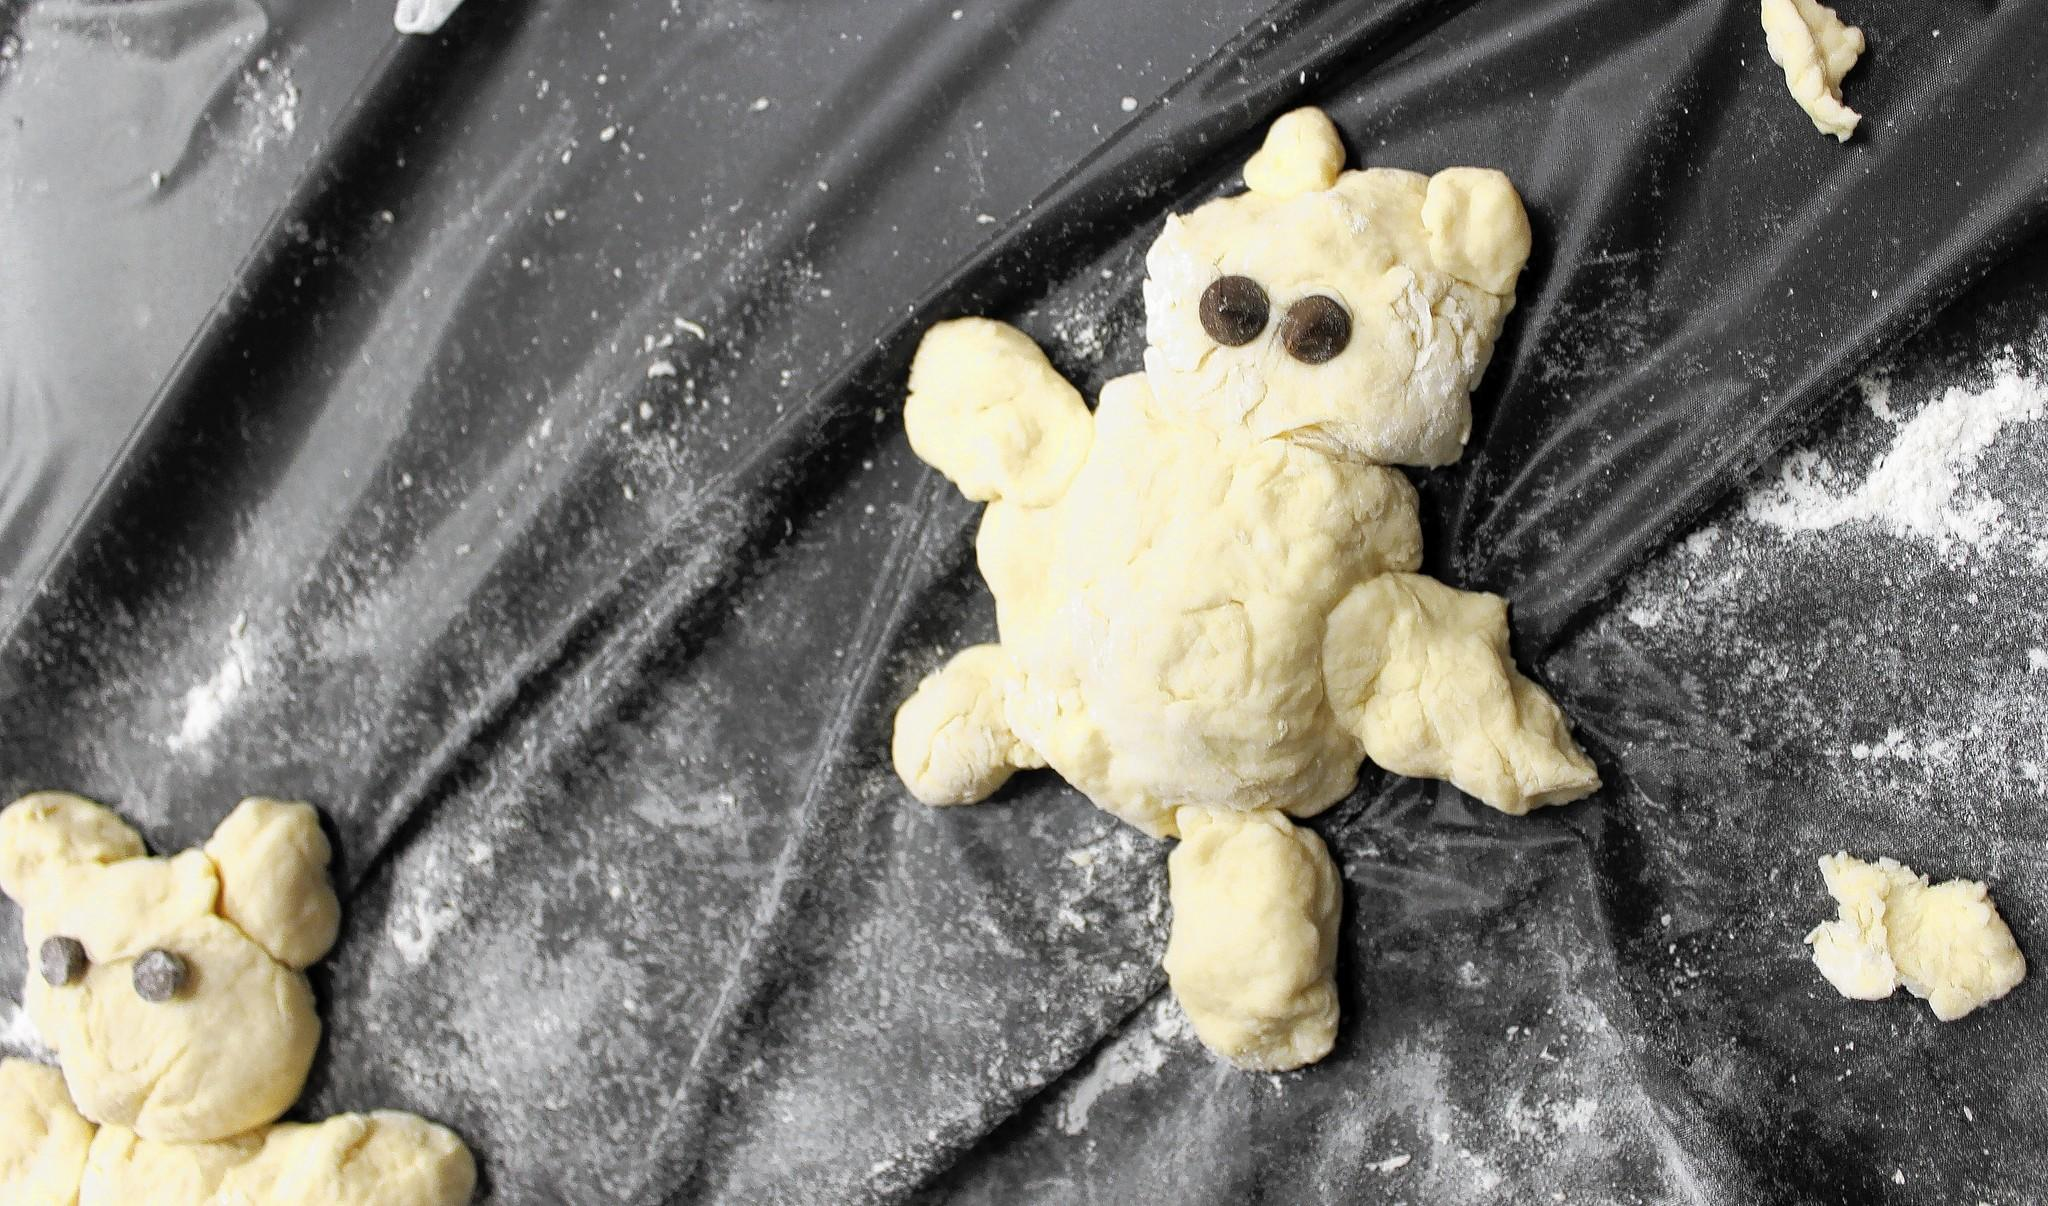 Kids created bread bears, complete with chocolate chips for eyes, in a recent bread-making class at Stew Leonard's in Newington.